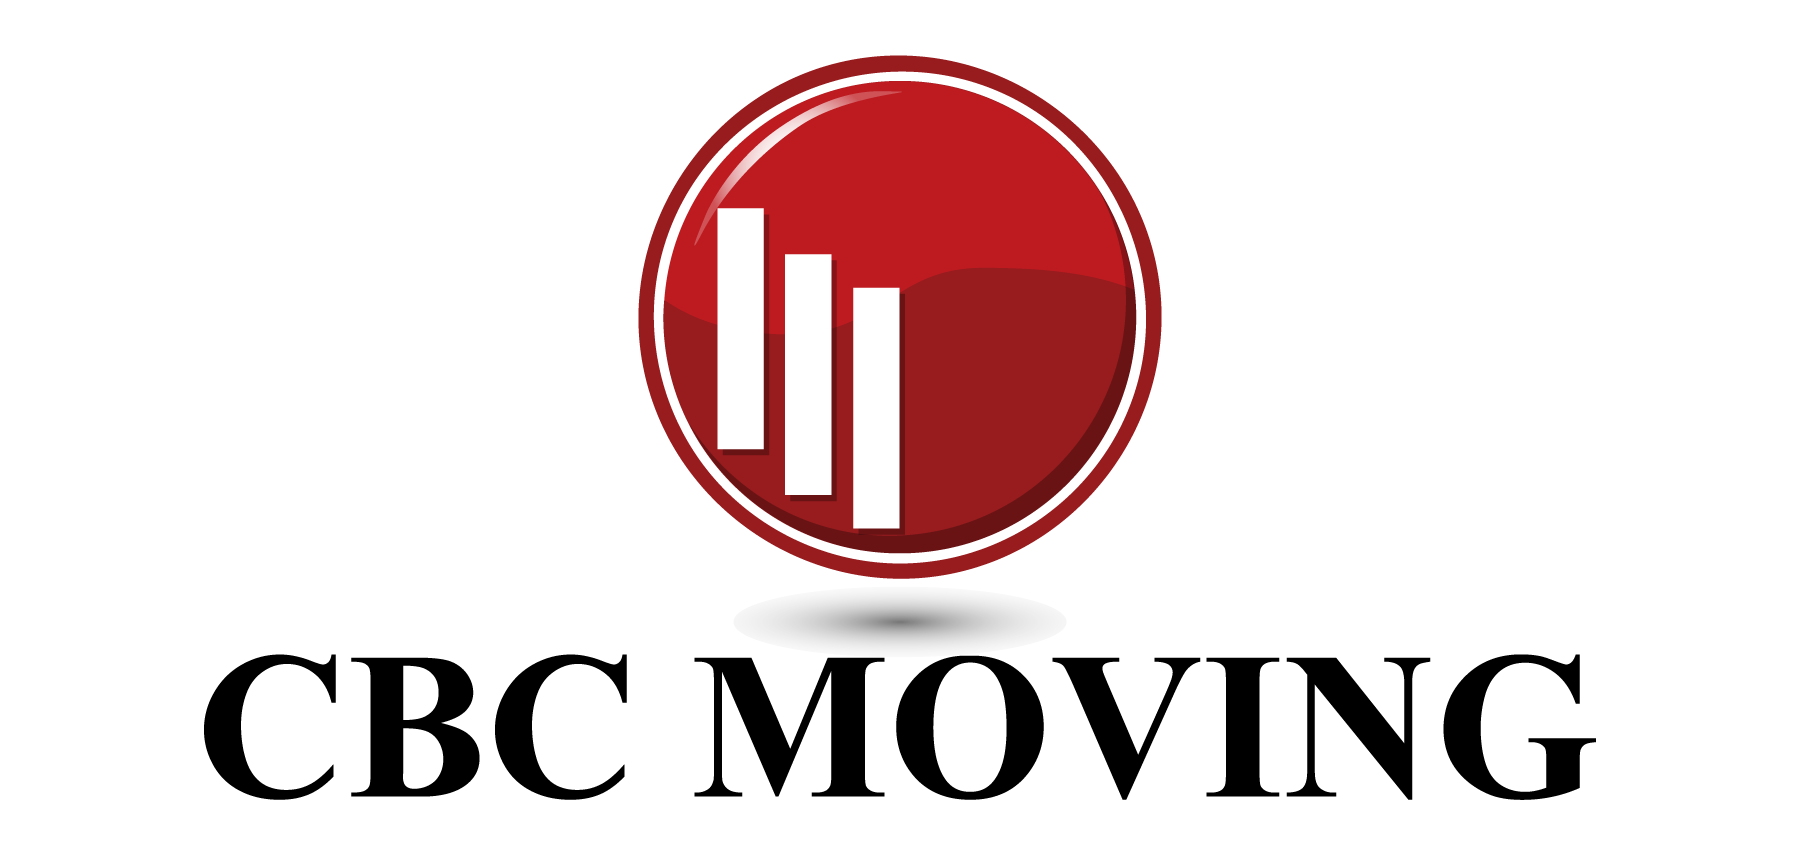 CBC Moving image 1